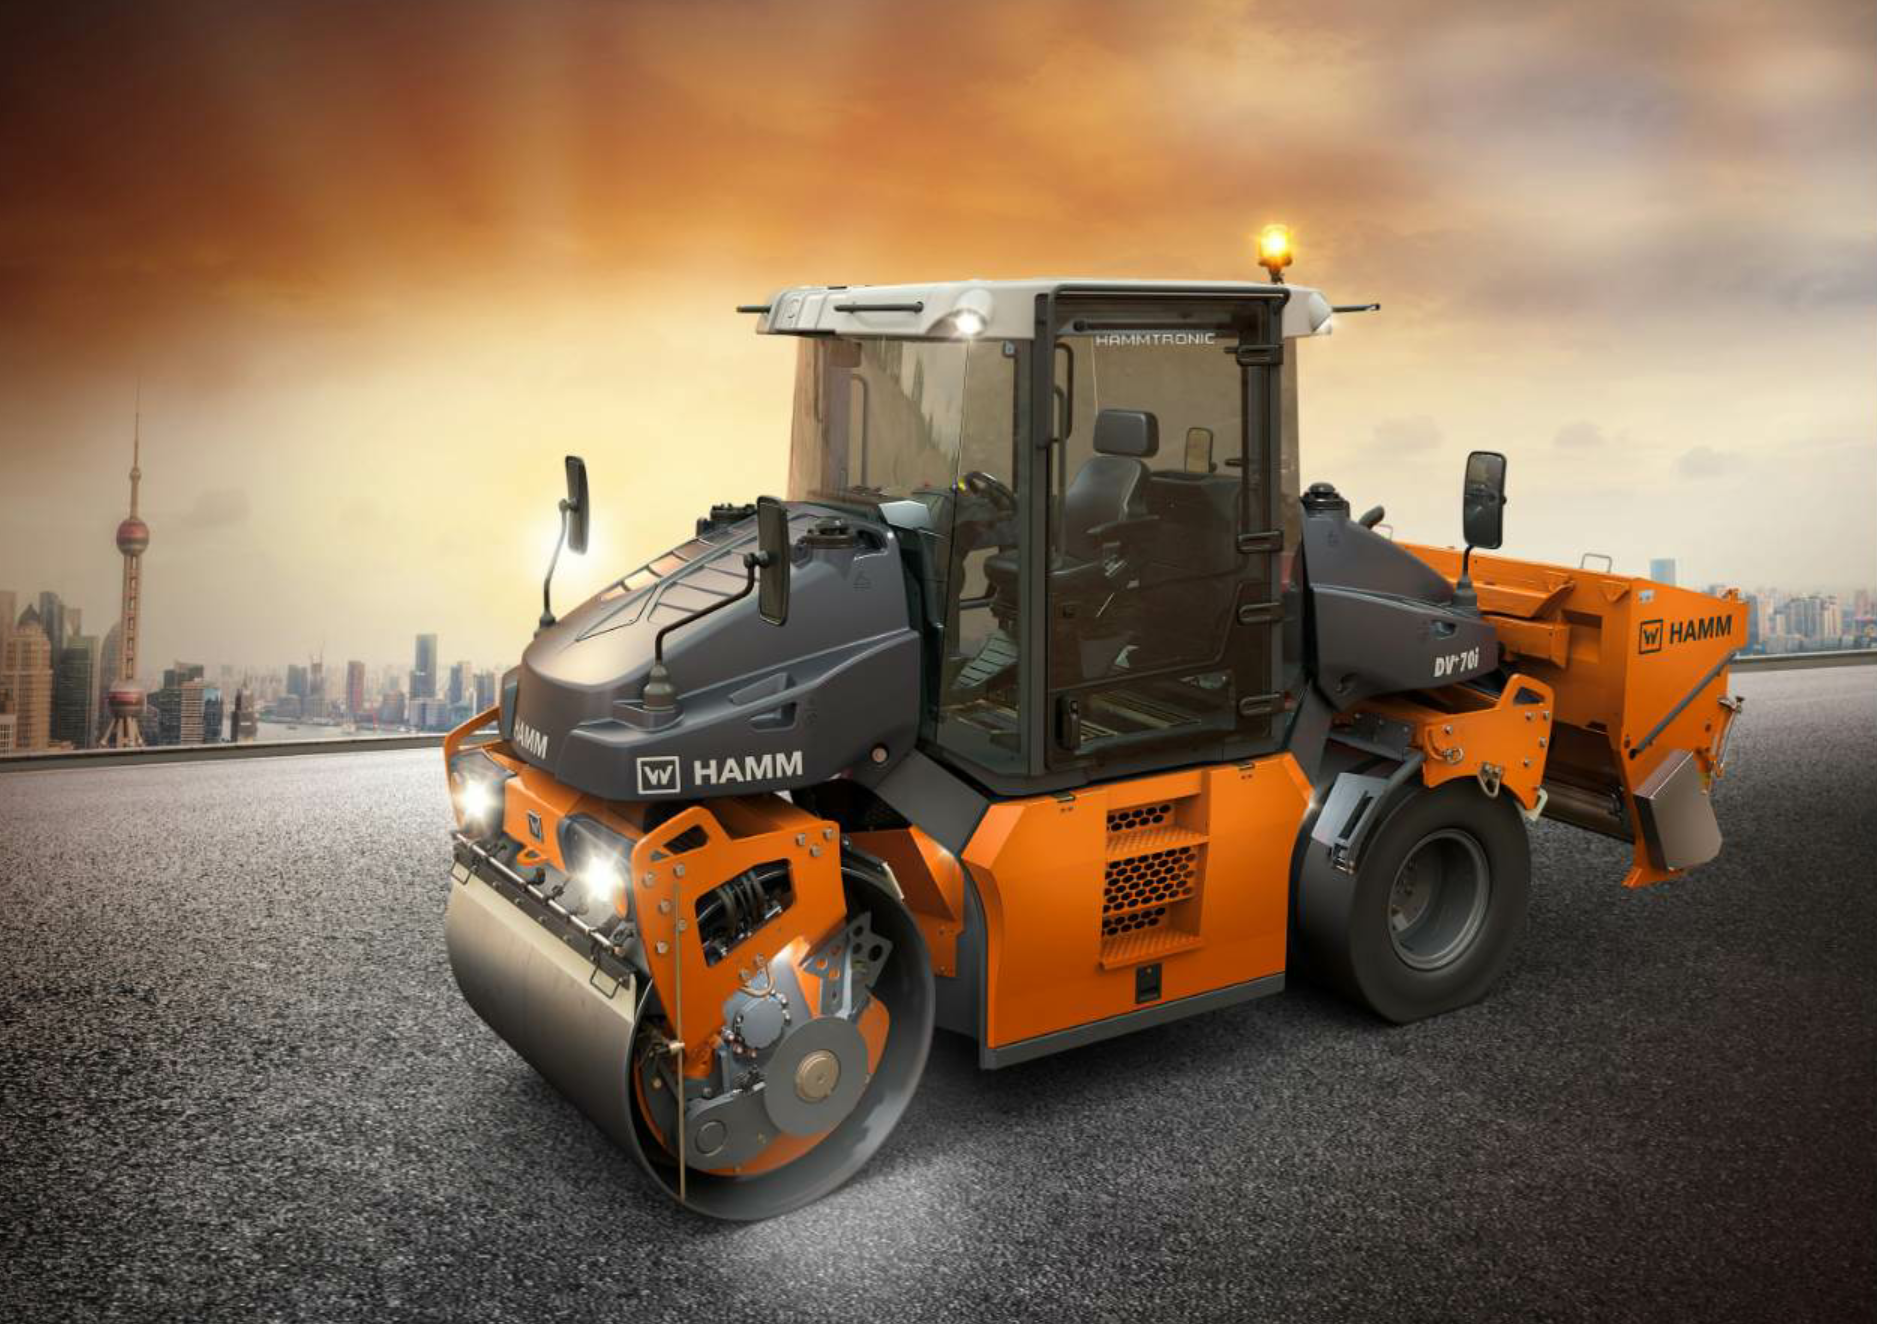 The Hamm DV+ models are available as a tandem roller with double vibration split drums or with oscillation and vibration split drums, and also as a combi roller with split smooth drum and pneumatic tires, shown here with an optional chip spreader.